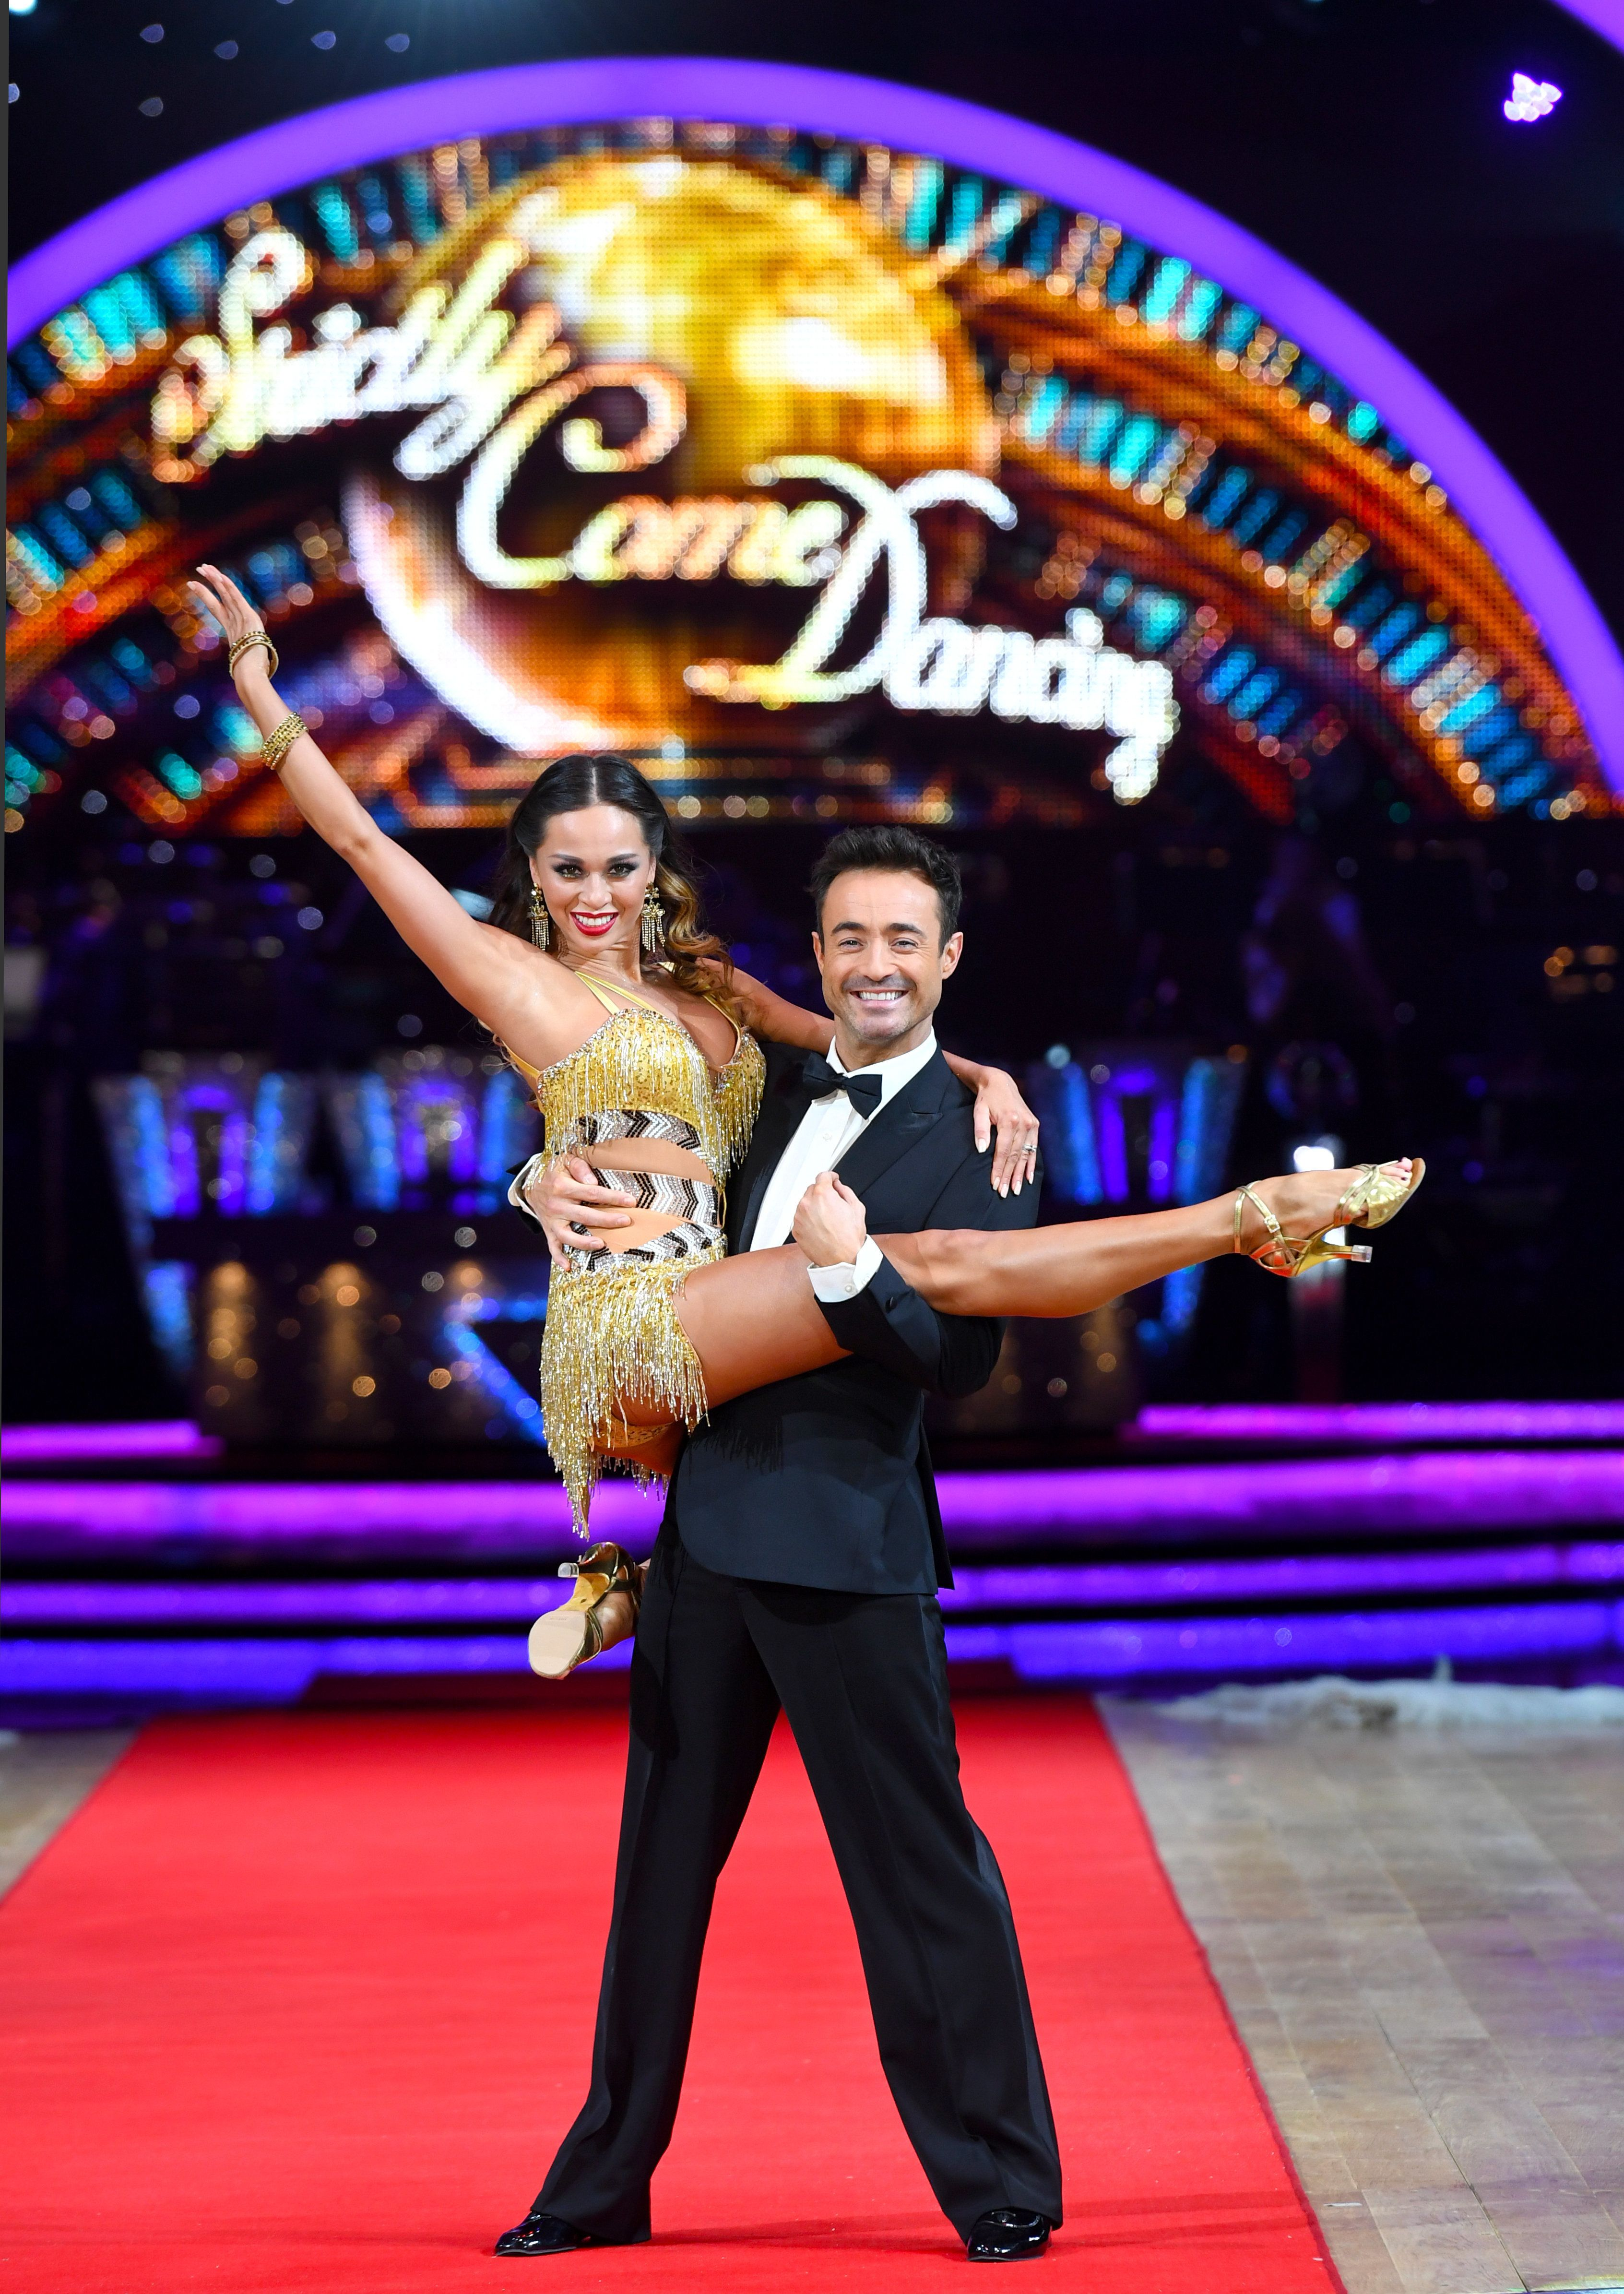 Joe McFadden Blasts Claims He Missed This Year's 'Strictly' Launch Over A Feud With Producers